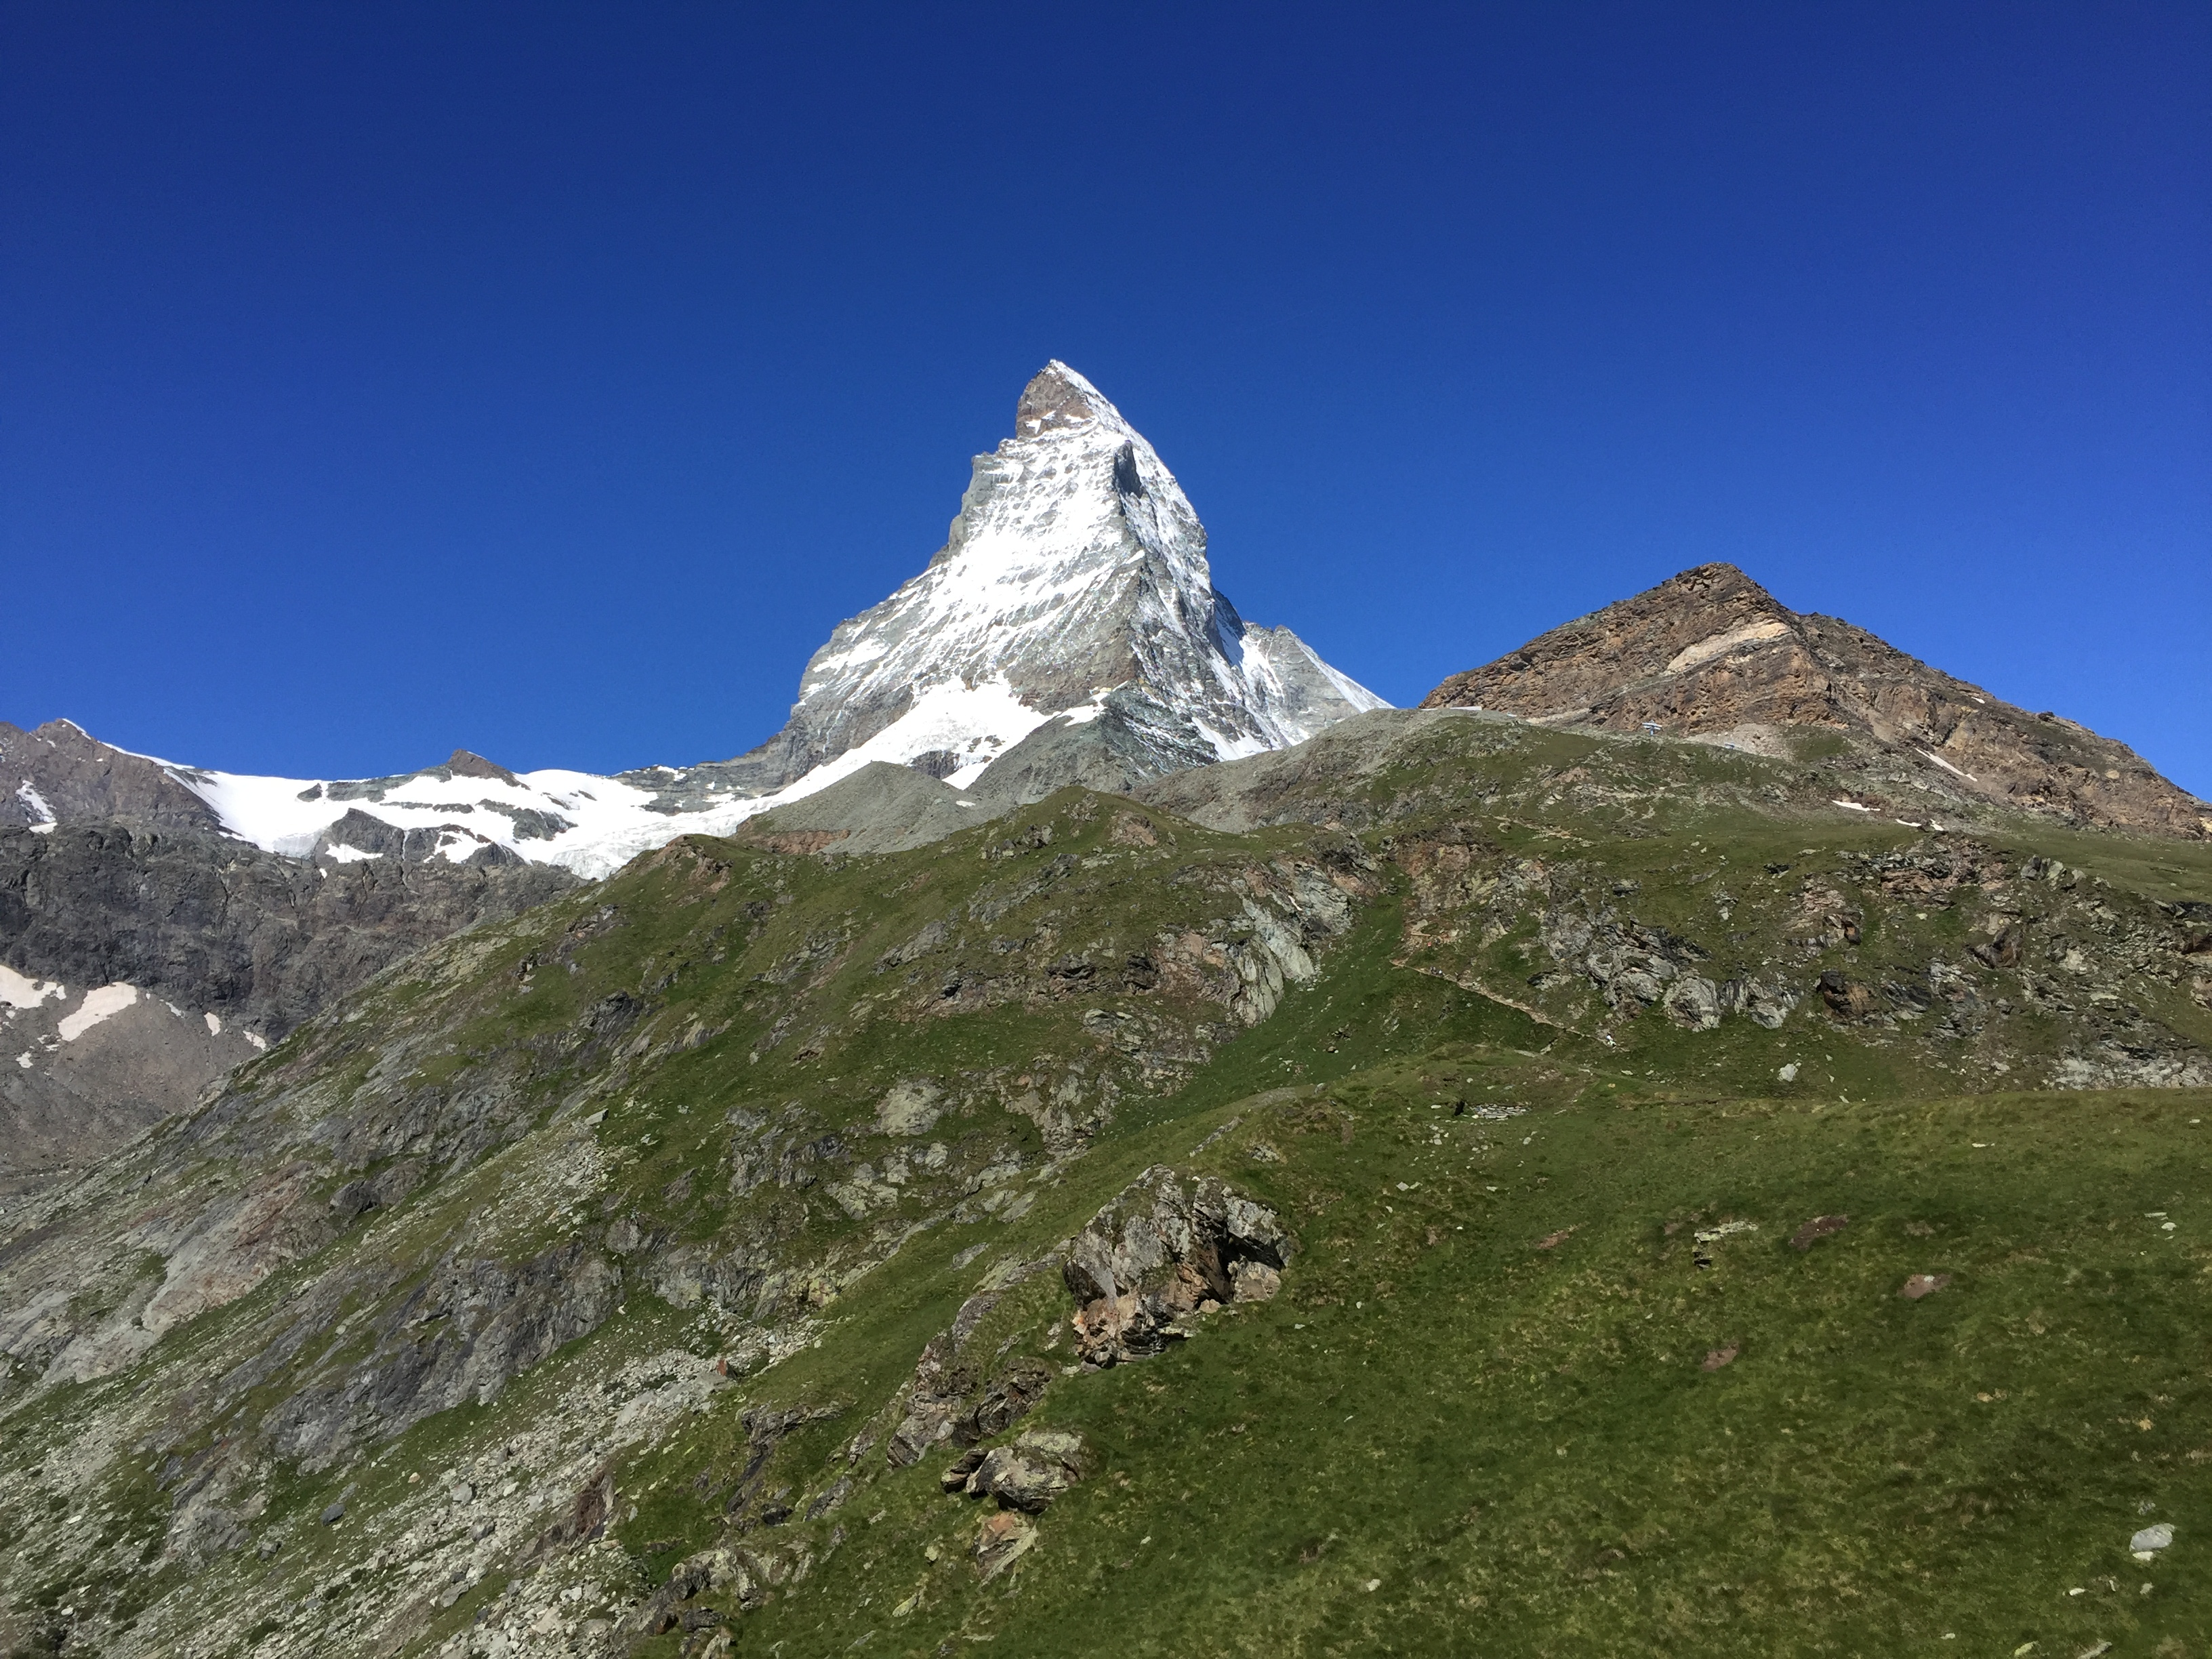 The Matterhorn rearing up above Zermatt